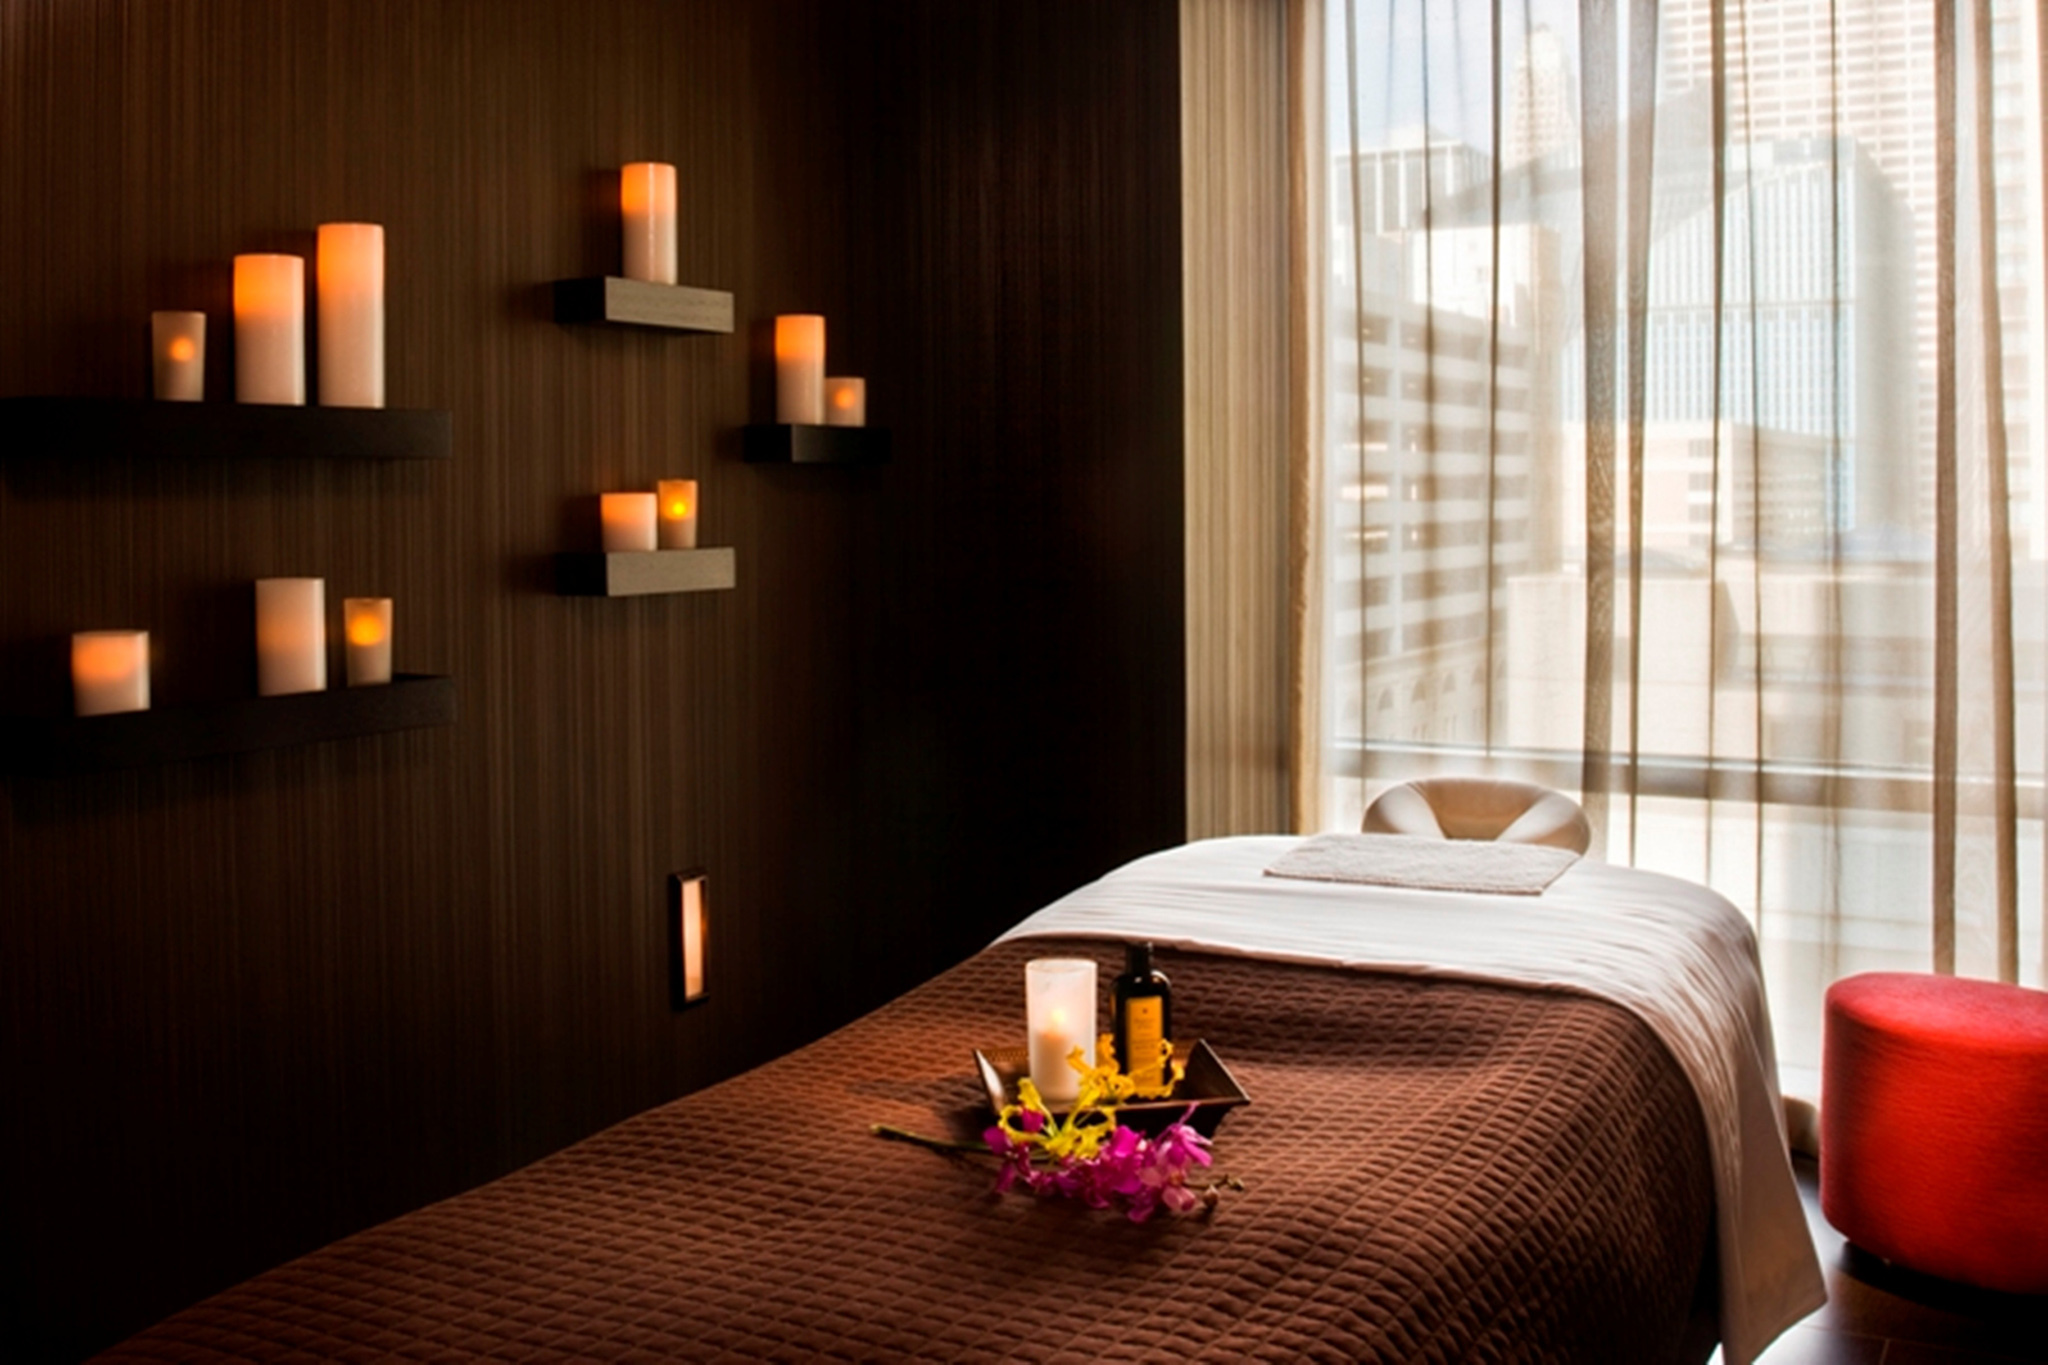 The best spas in chicago for massages manicures and more for Small luxury hotels chicago